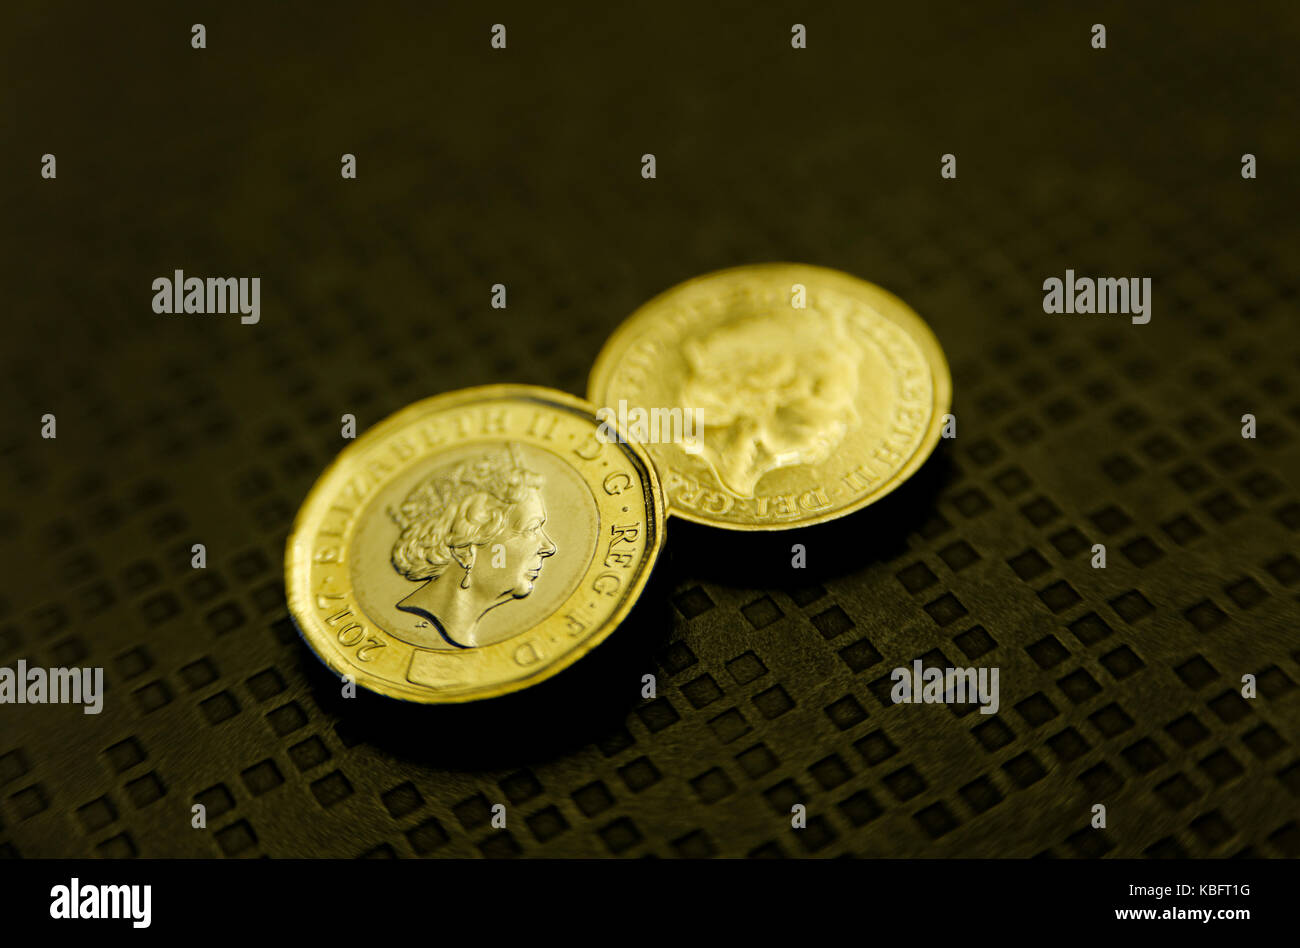 GB POUND COINS OLD AND NEW VERSION - Stock Image